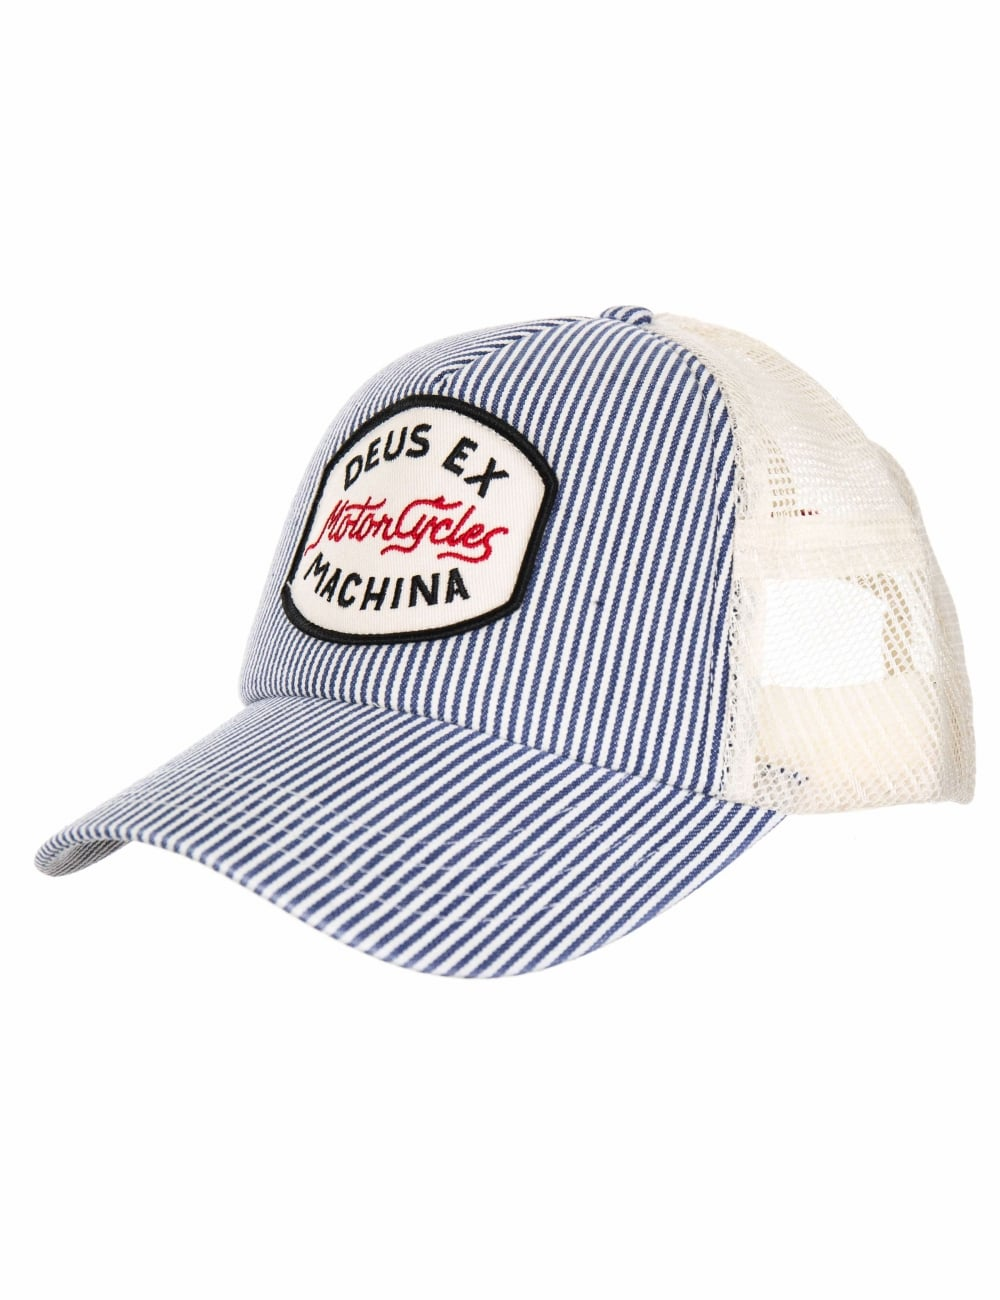 66cbbee910ba1 Deus Ex Machina Ford Trucker Hat - Off White - Hat Shop from Fat ...